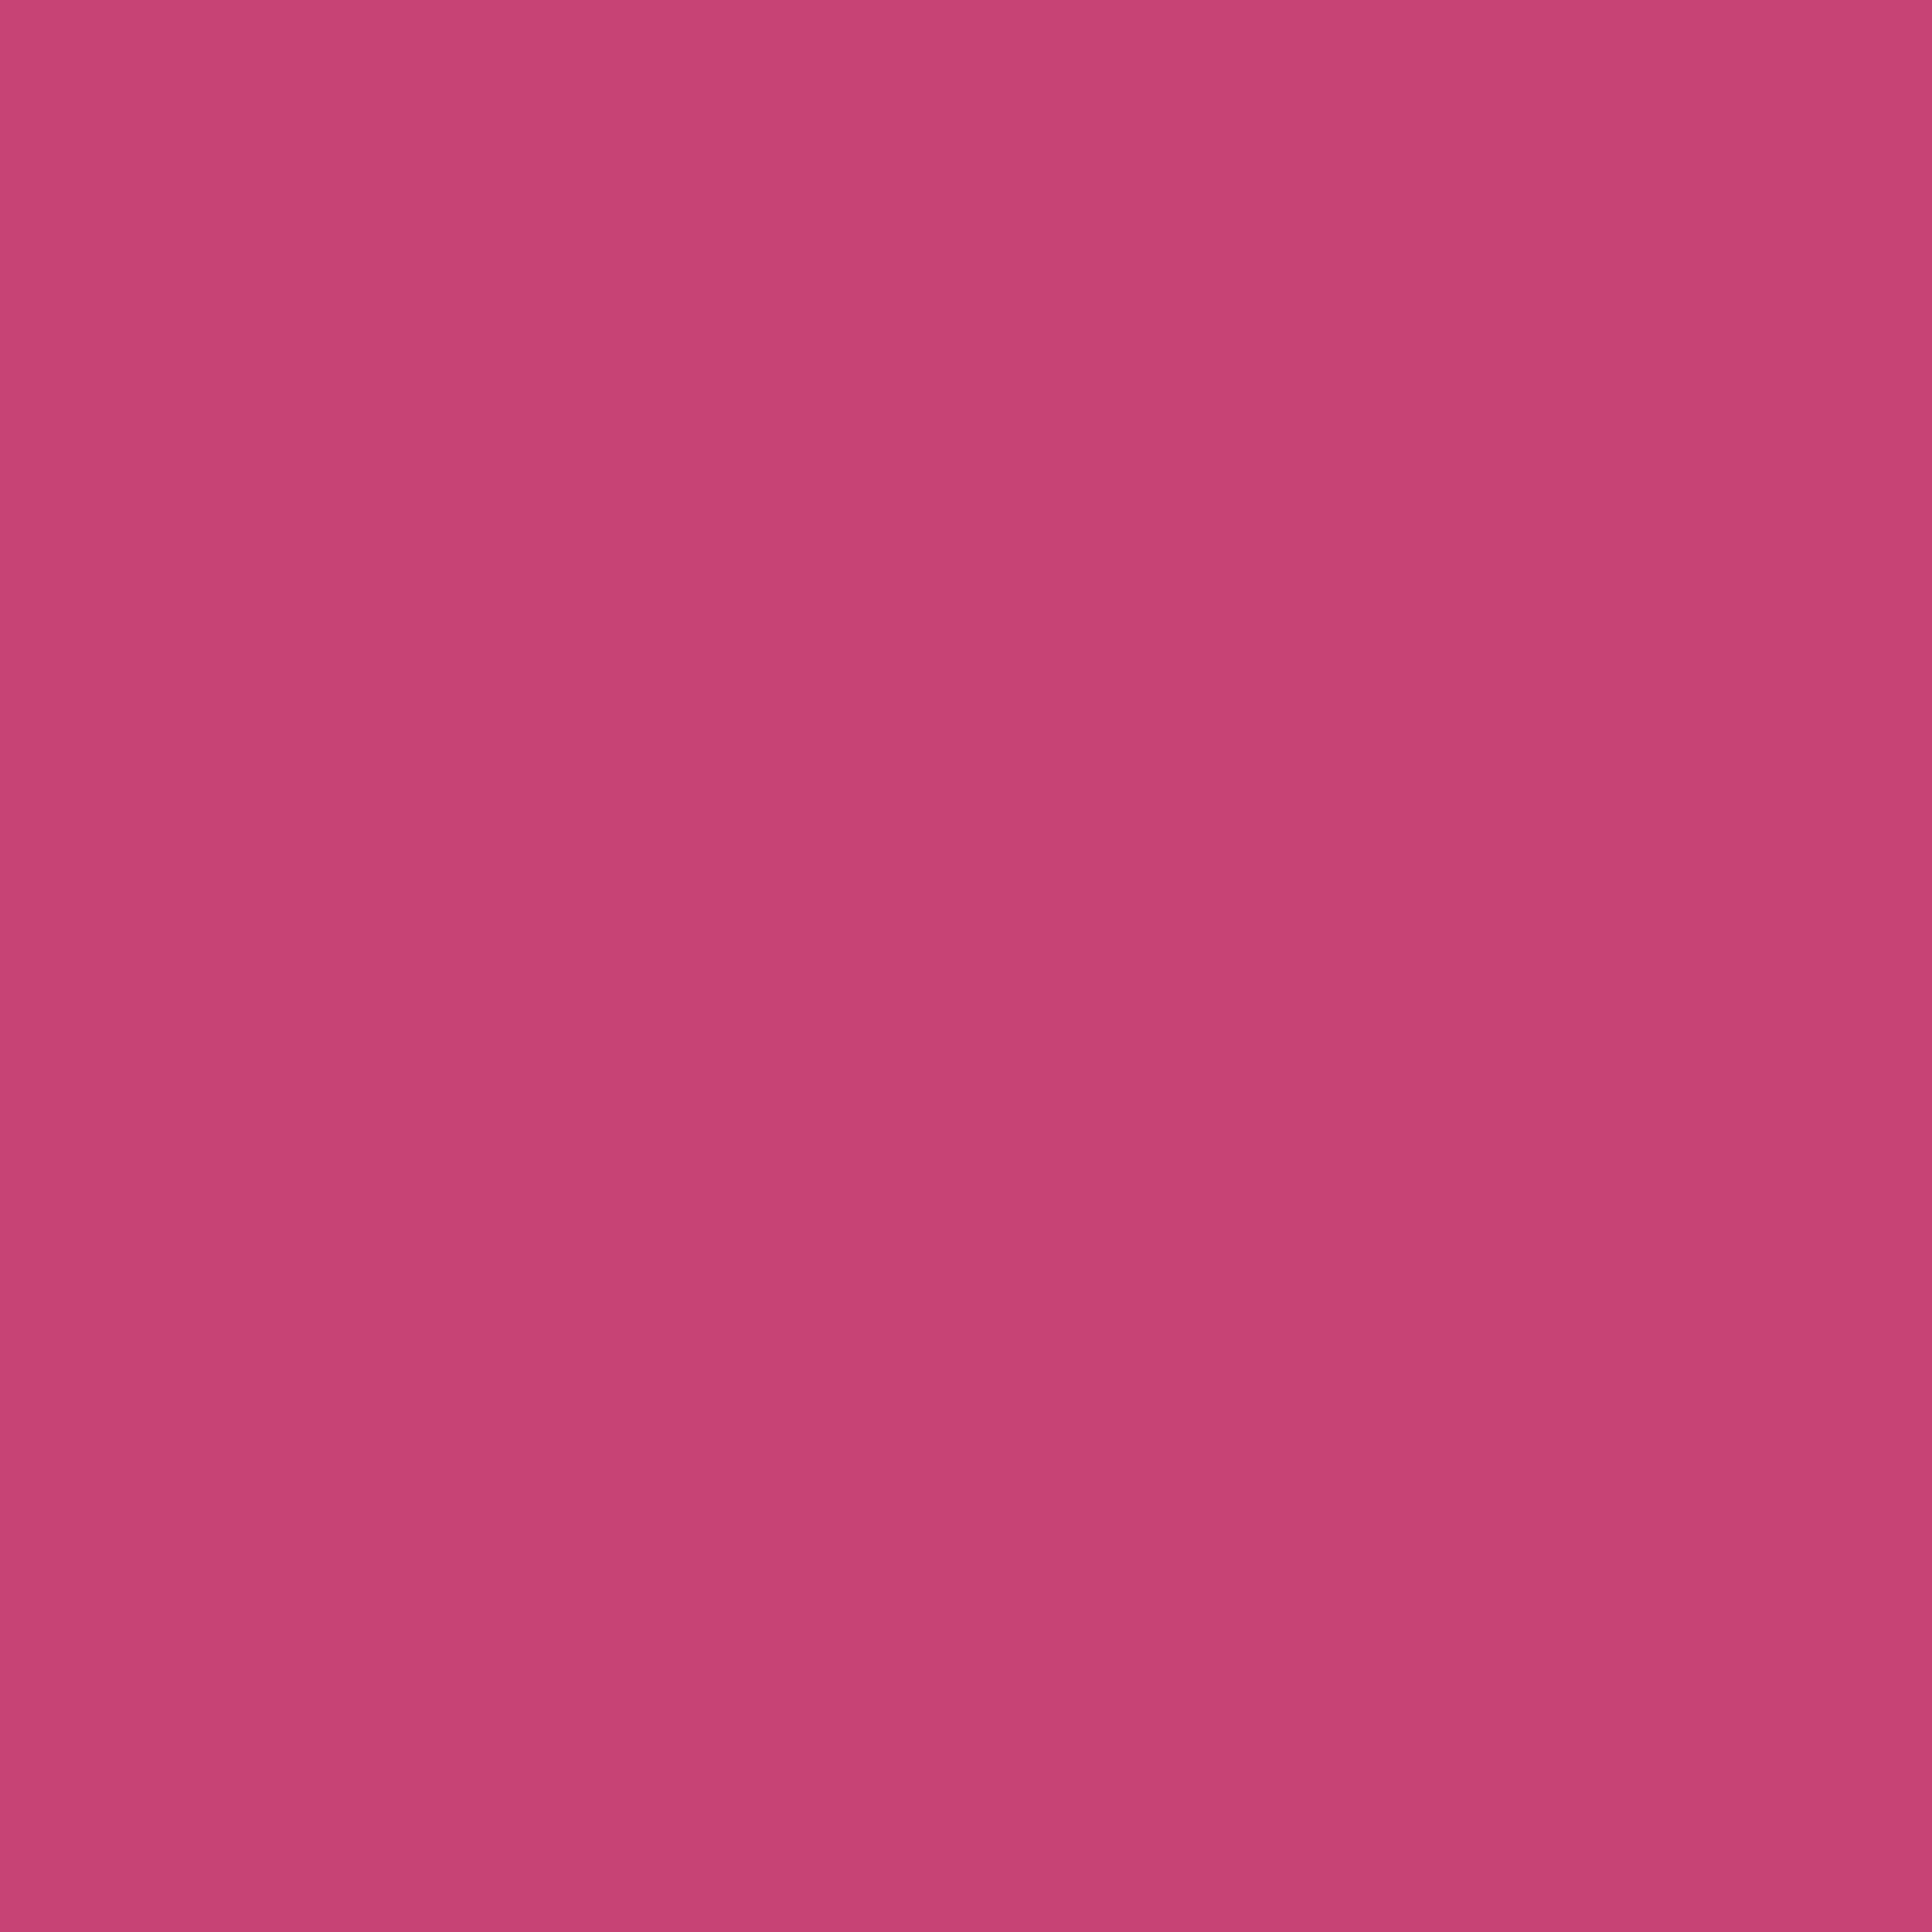 2732x2732 Fuchsia Rose Solid Color Background